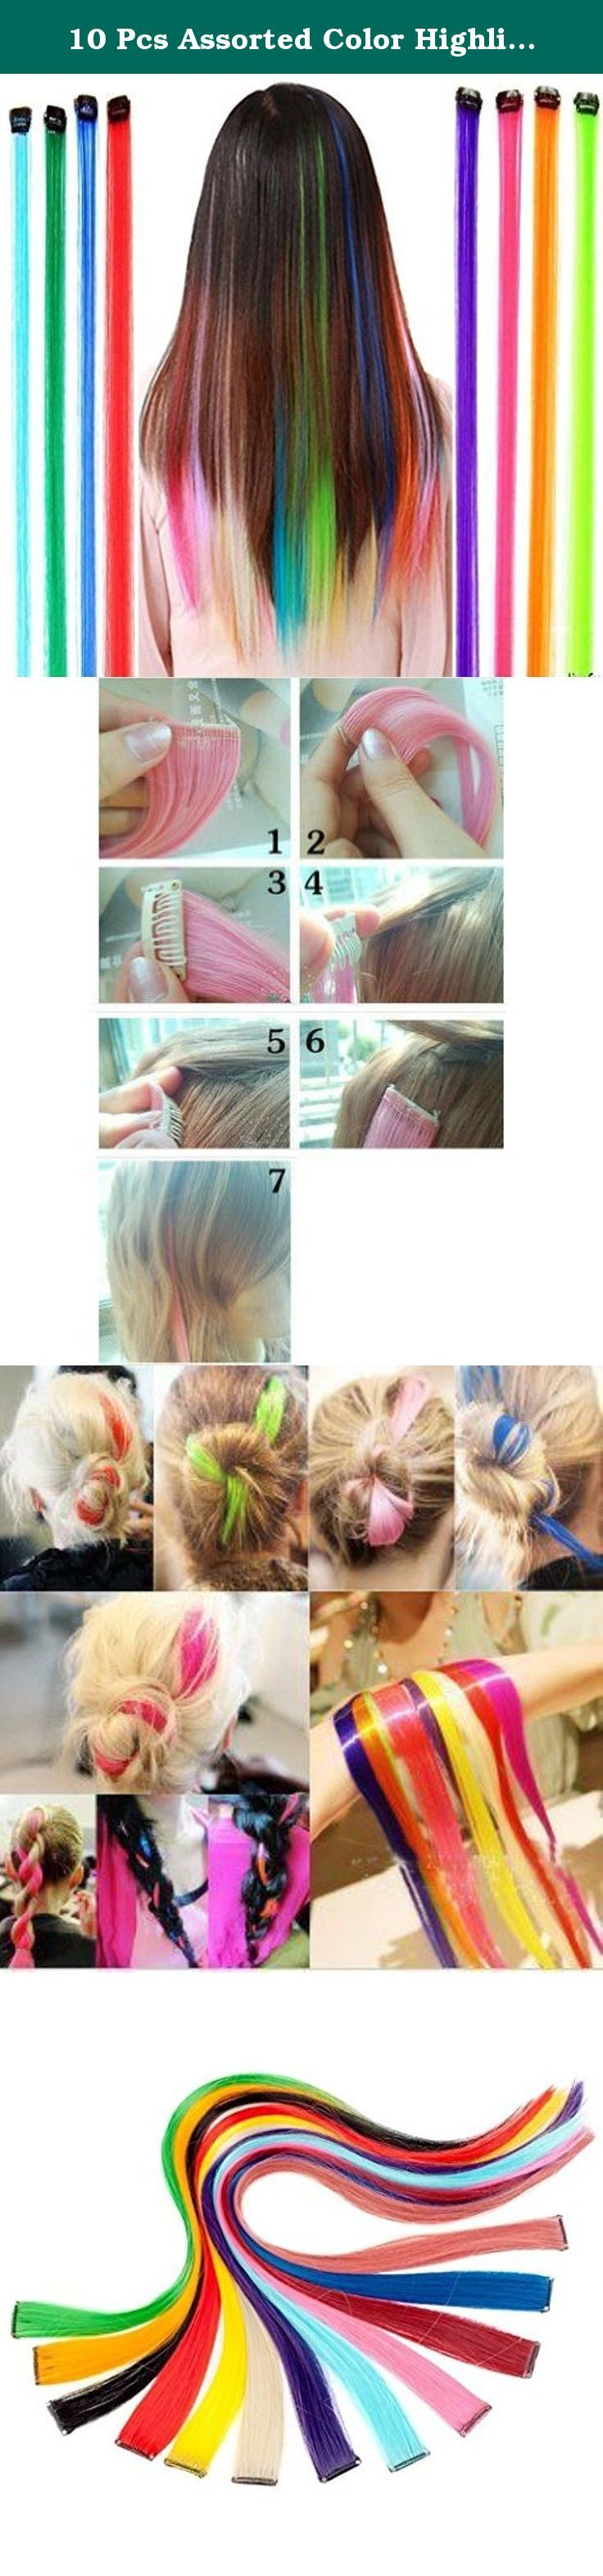 10 Pcs Assorted Color Highlights Colorful Hair Extensions Hairpieces Beauty Hair Clip On Salon Supply Hair Pieces Costume Accessory for Party or Daily. Great for Graduation party, Wedding , Prom and much more length£º55cm(21.5inch),Width: 2.6cm(1inch) Material: High Temperature Kanekalon Synthetic Fiber Make your own fasion hair style You can blow-dry, straighten, curl, wash, and trim them to desired length as if they are actual strands of hair. The hair extension can be heated up to 195...